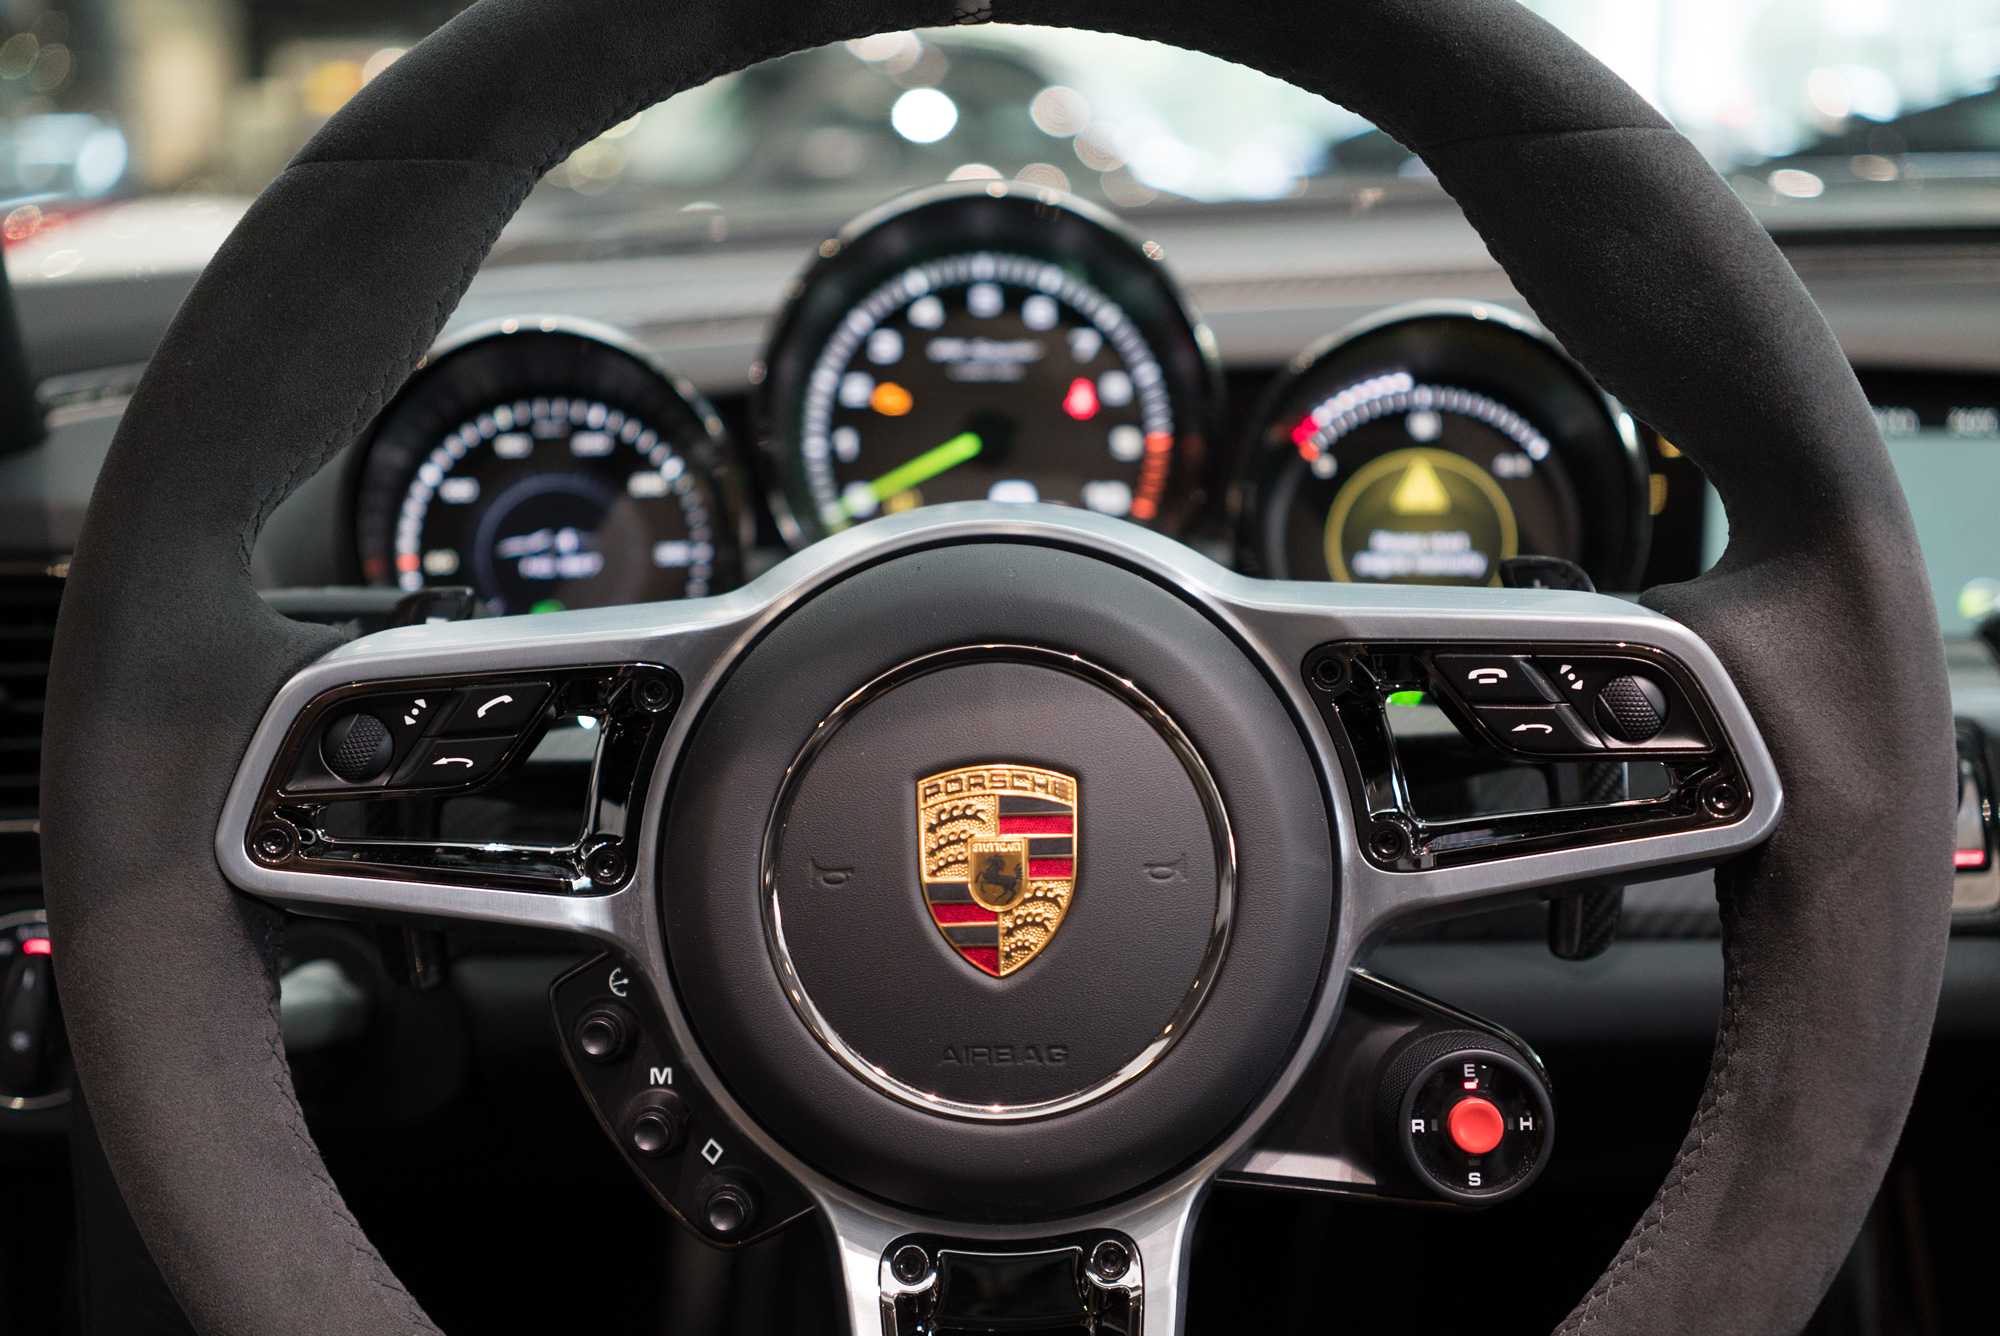 I Bet Most Of You Have A Steering Wheel That You Cherish Slightly More Than All The Rest So What Is It